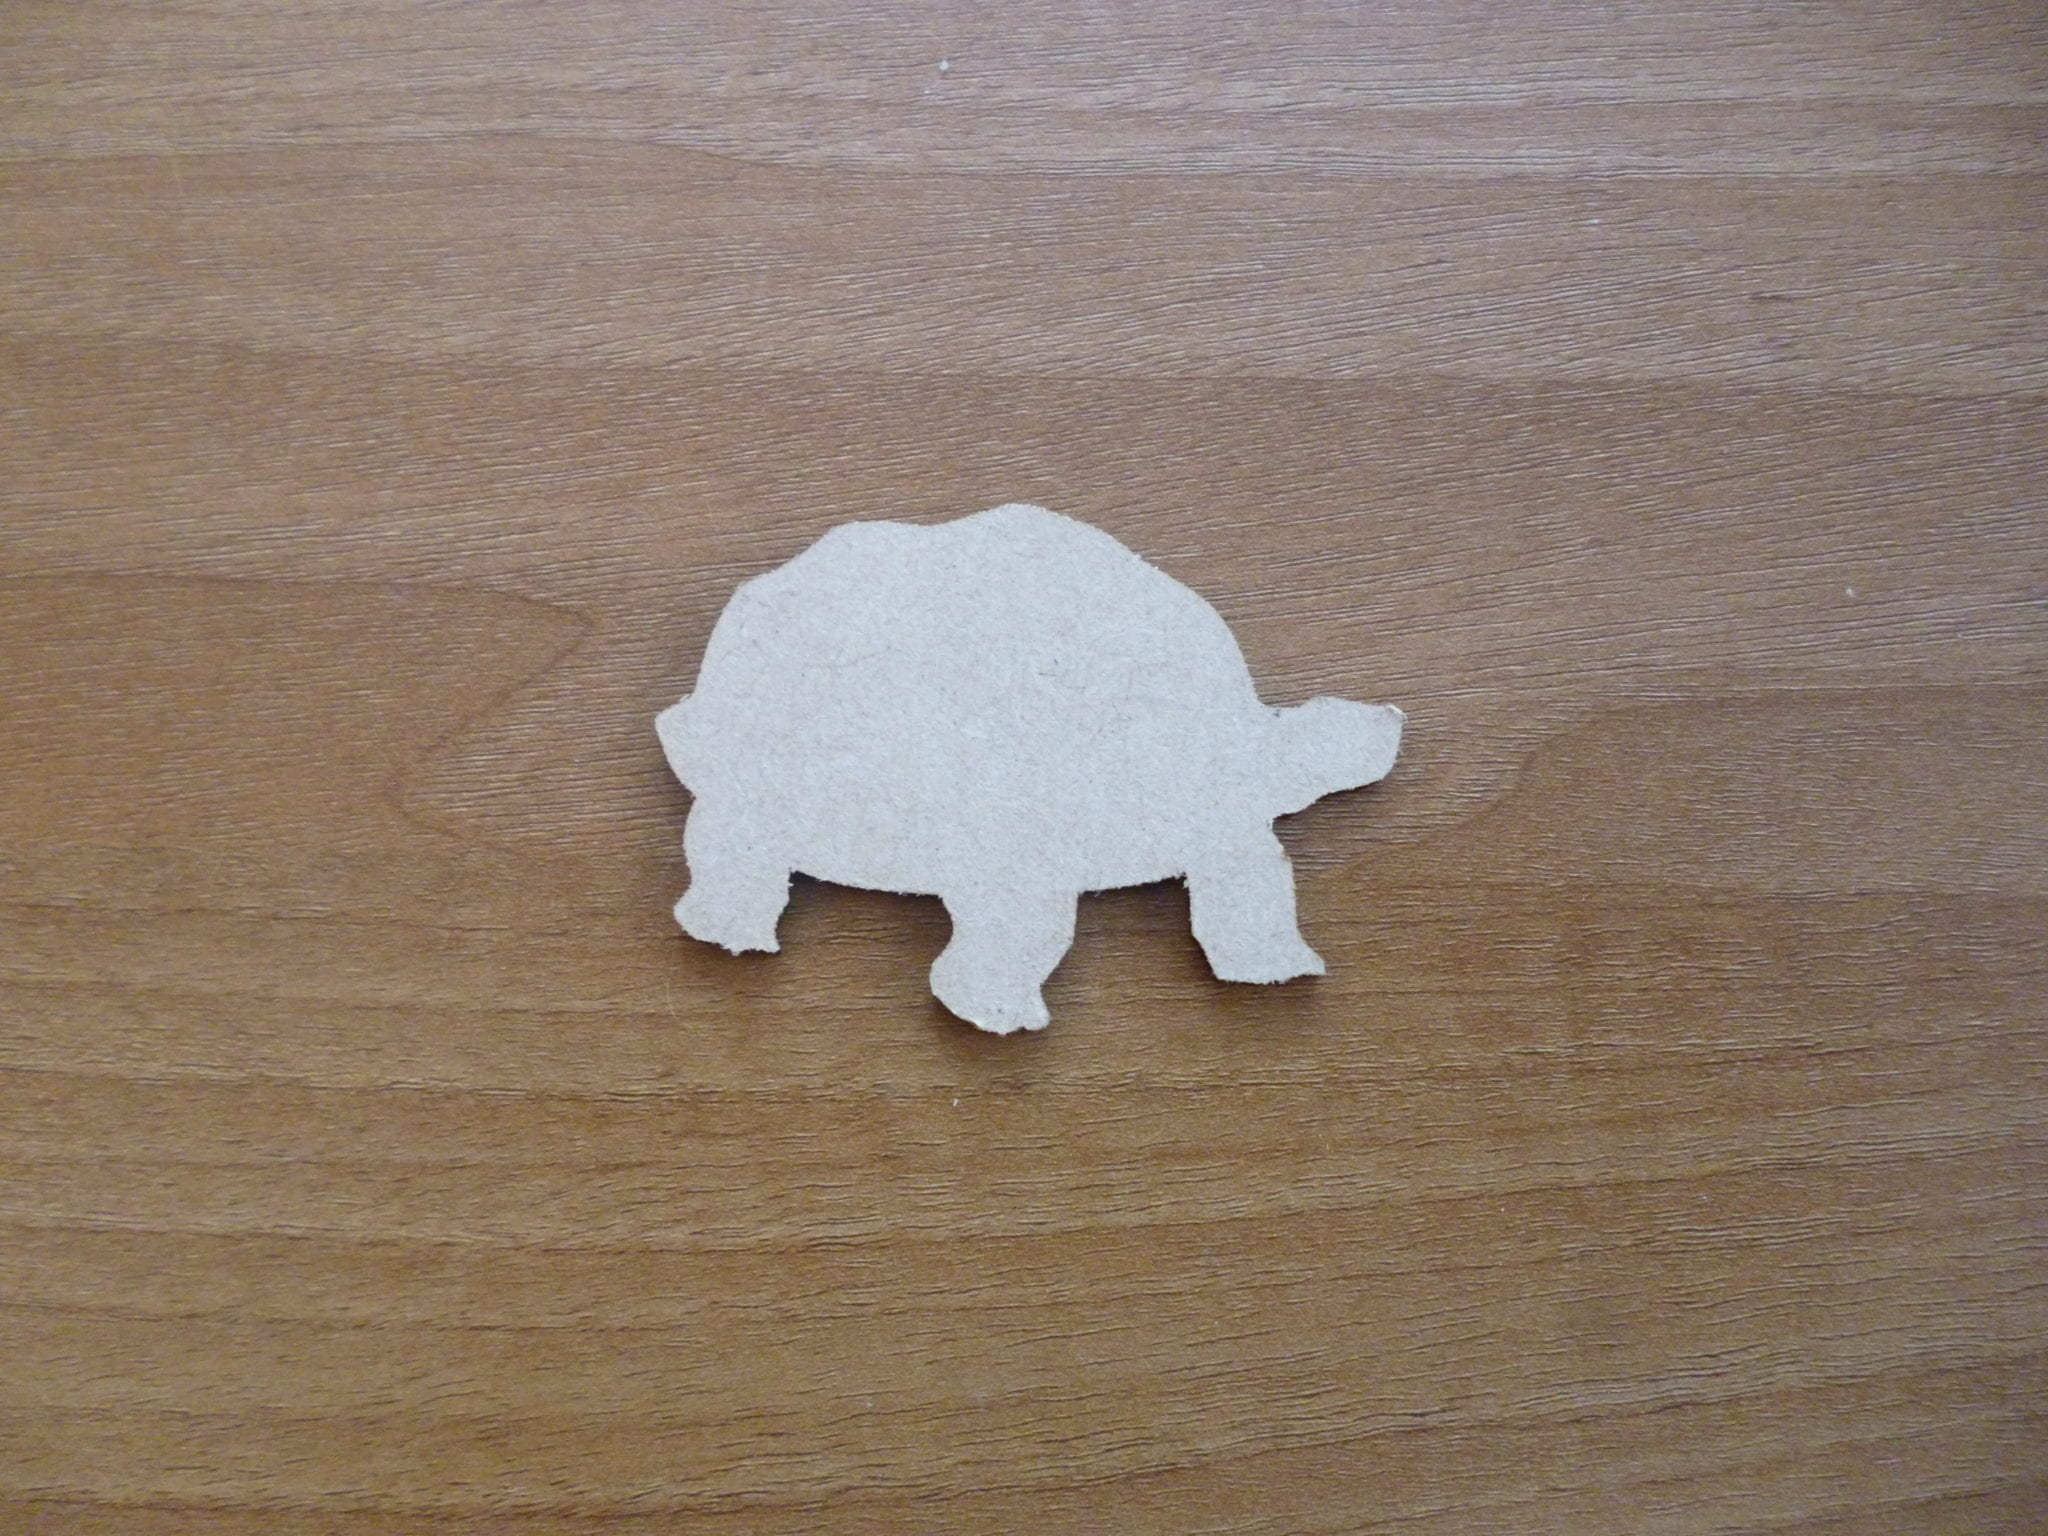 Wooden Mdf Hedgehog shapes Embellishment craft blank various sizes CFE68